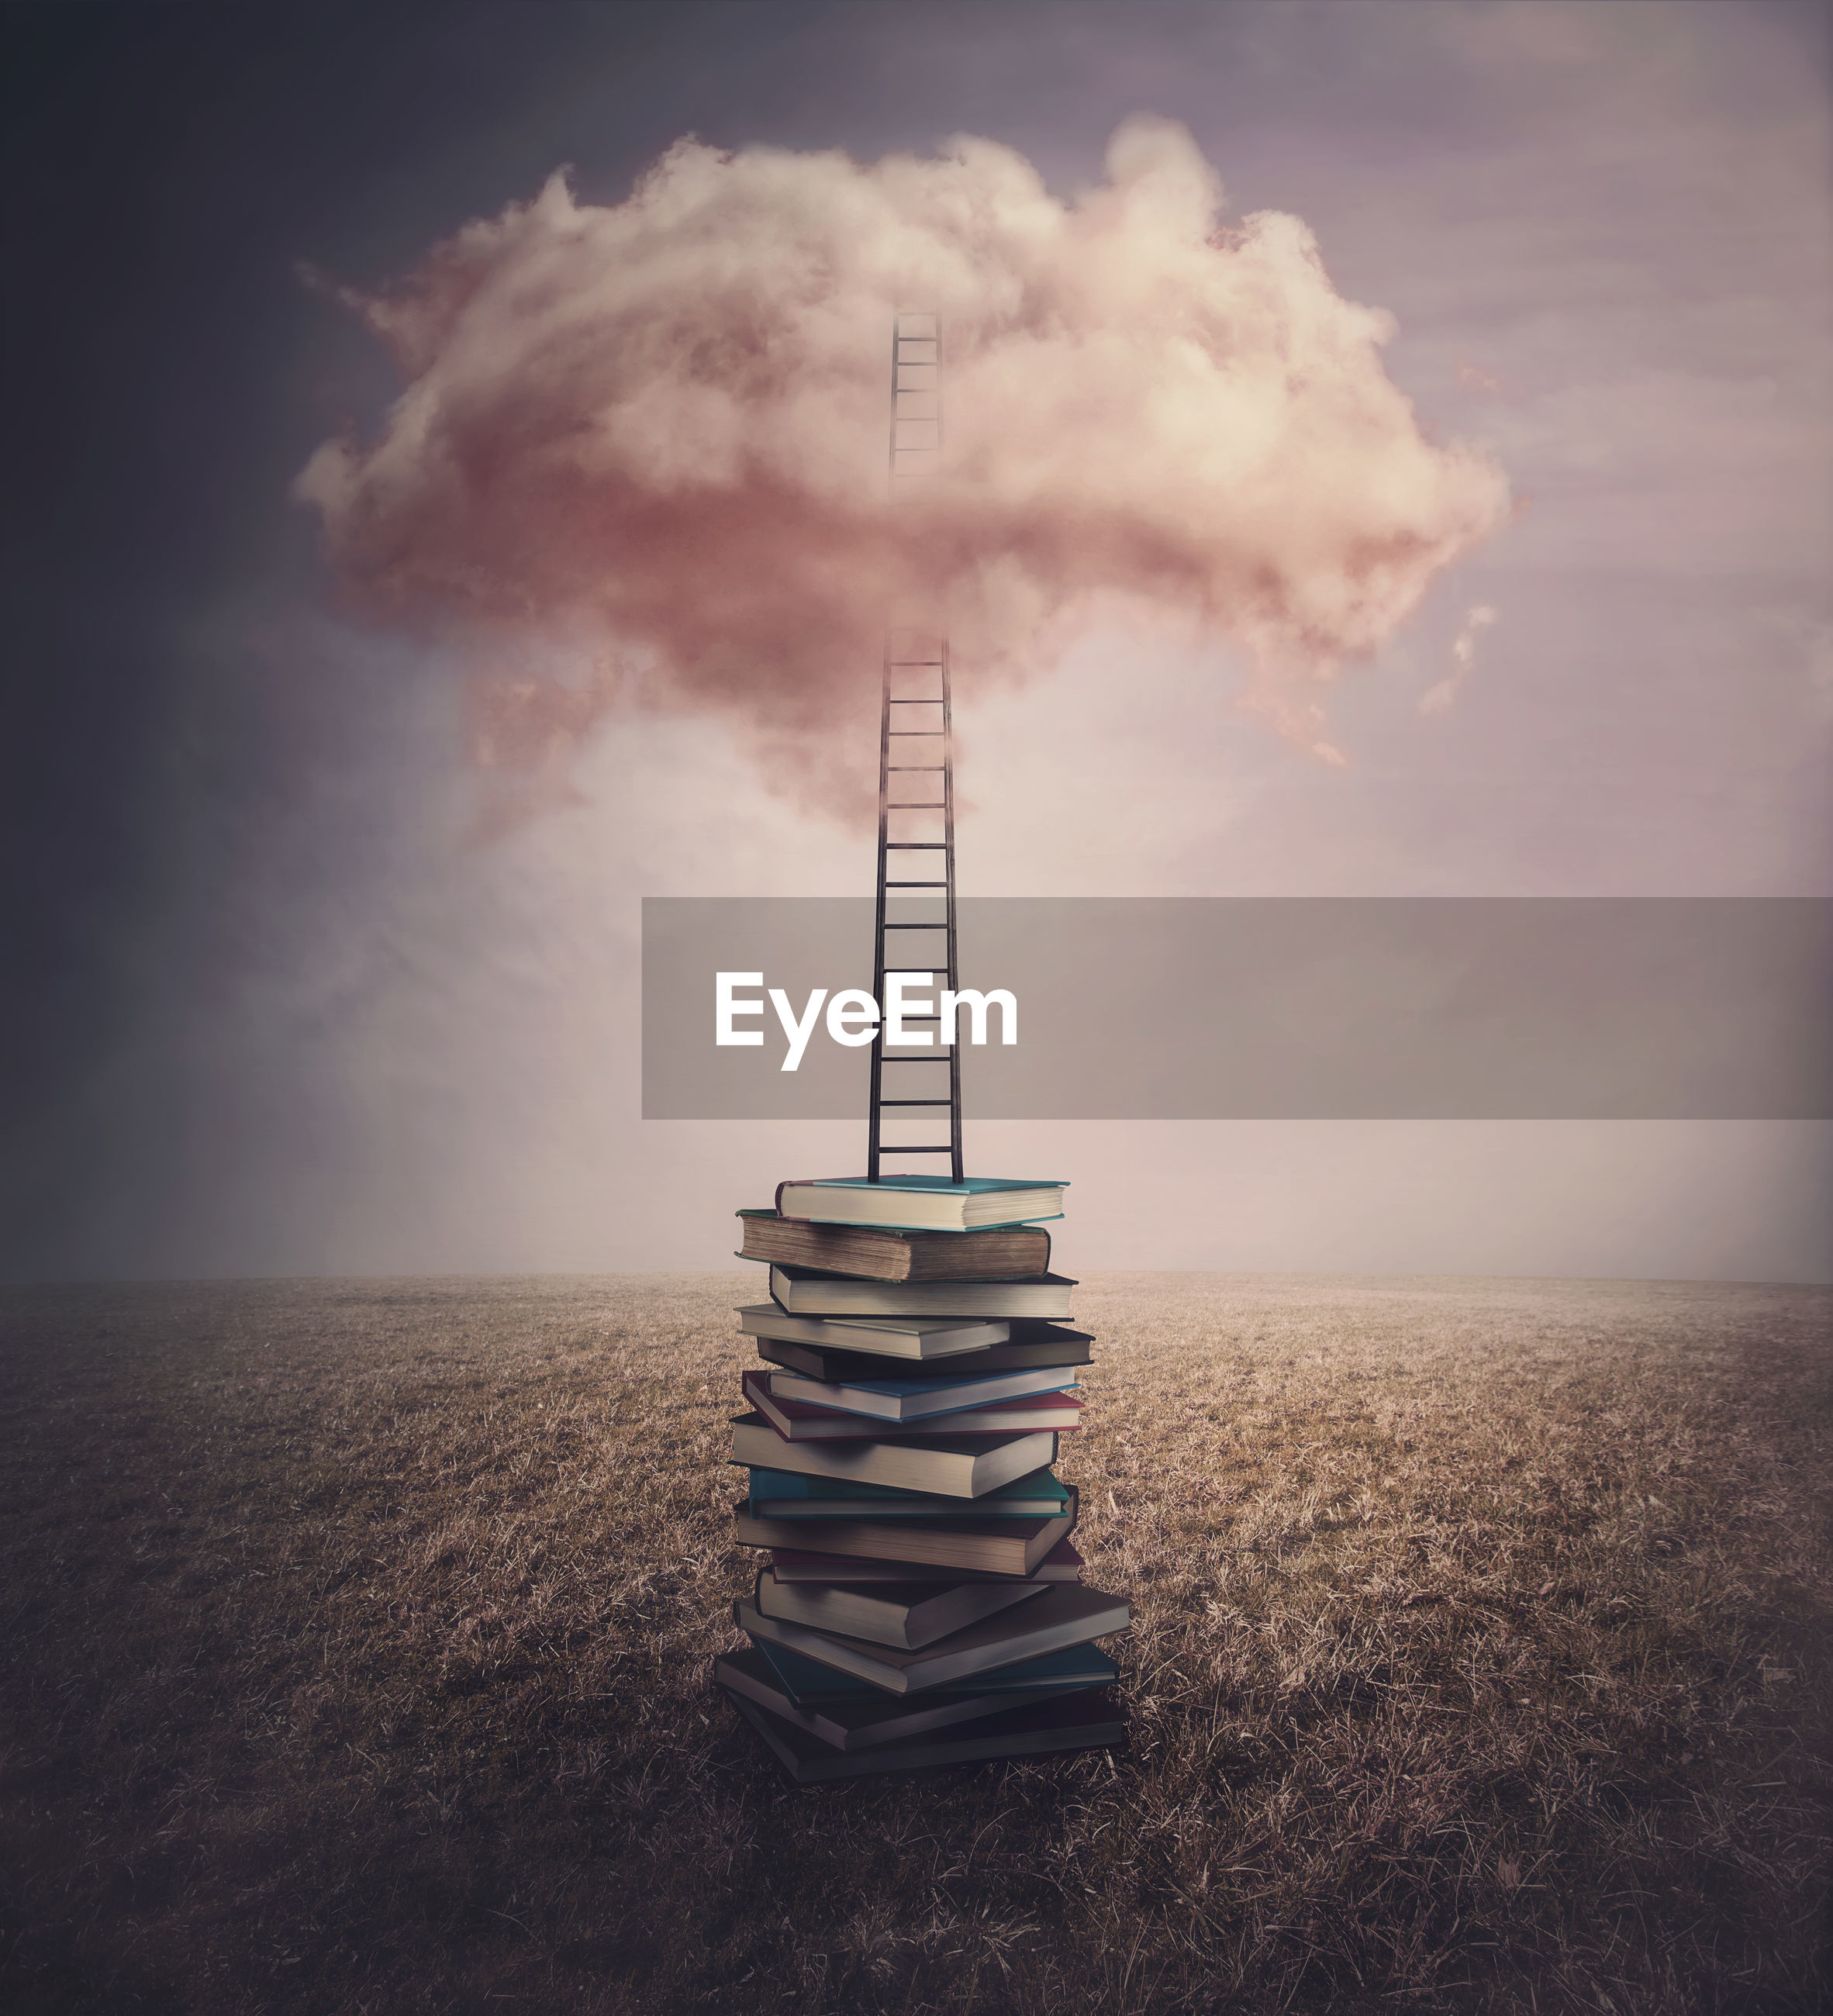 Books pile in the middle of an open meadow, and a ladder or stairway leading up to a pink cloud